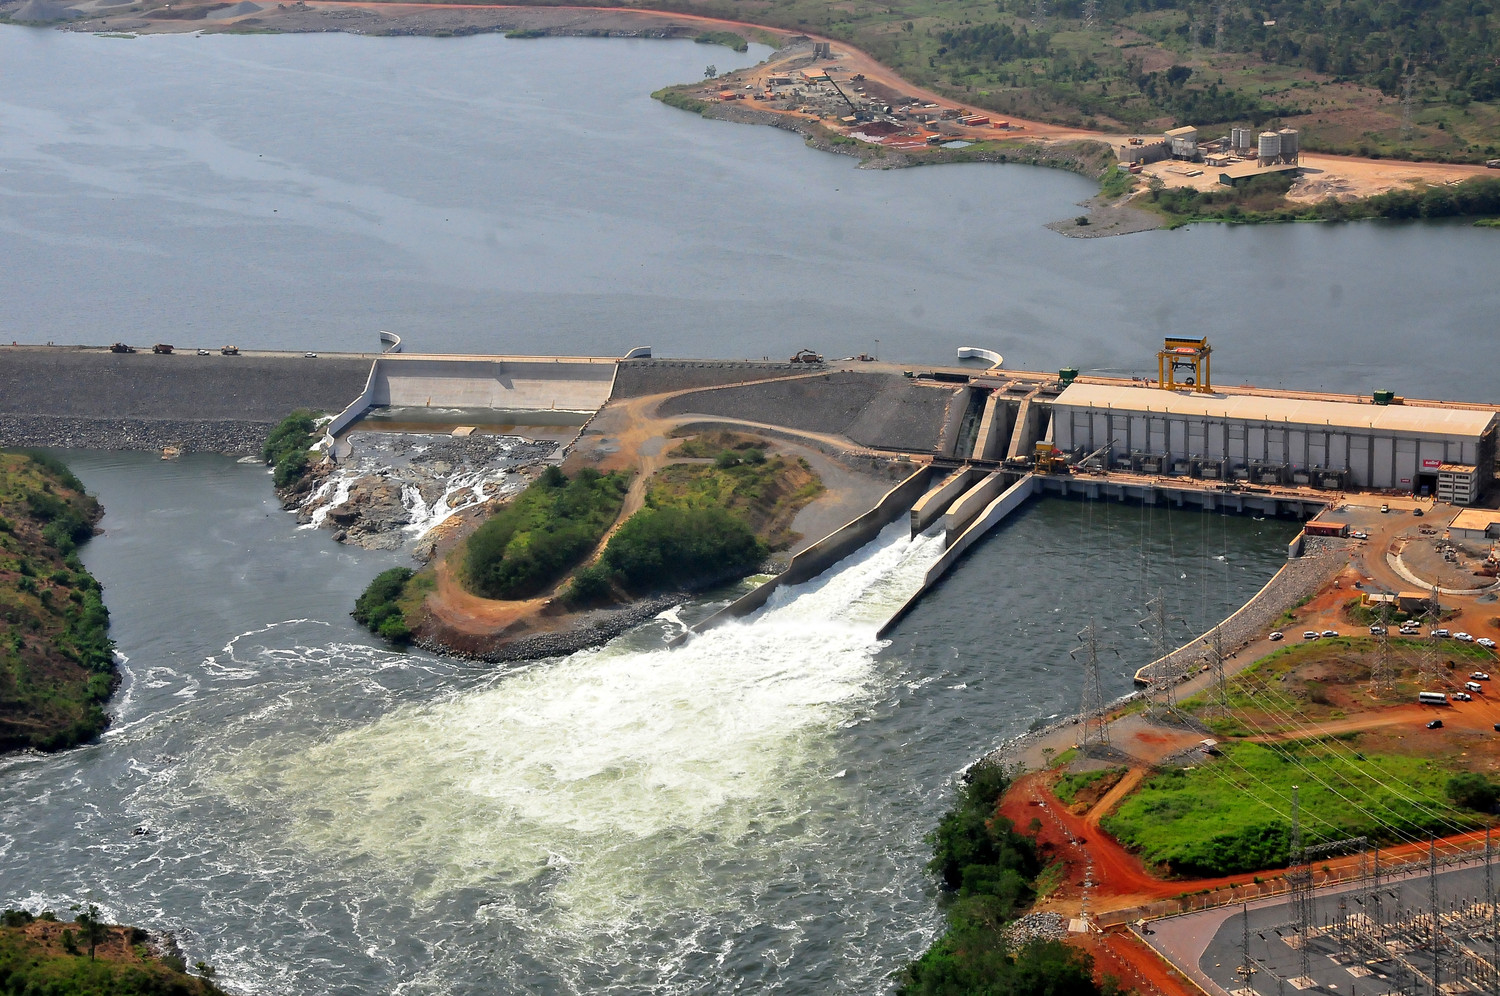 bujagali dum project The world bank is so keen to promote the bujagali ii hydropower project as the solution to uganda's energy problems that it has set up a special website for it.